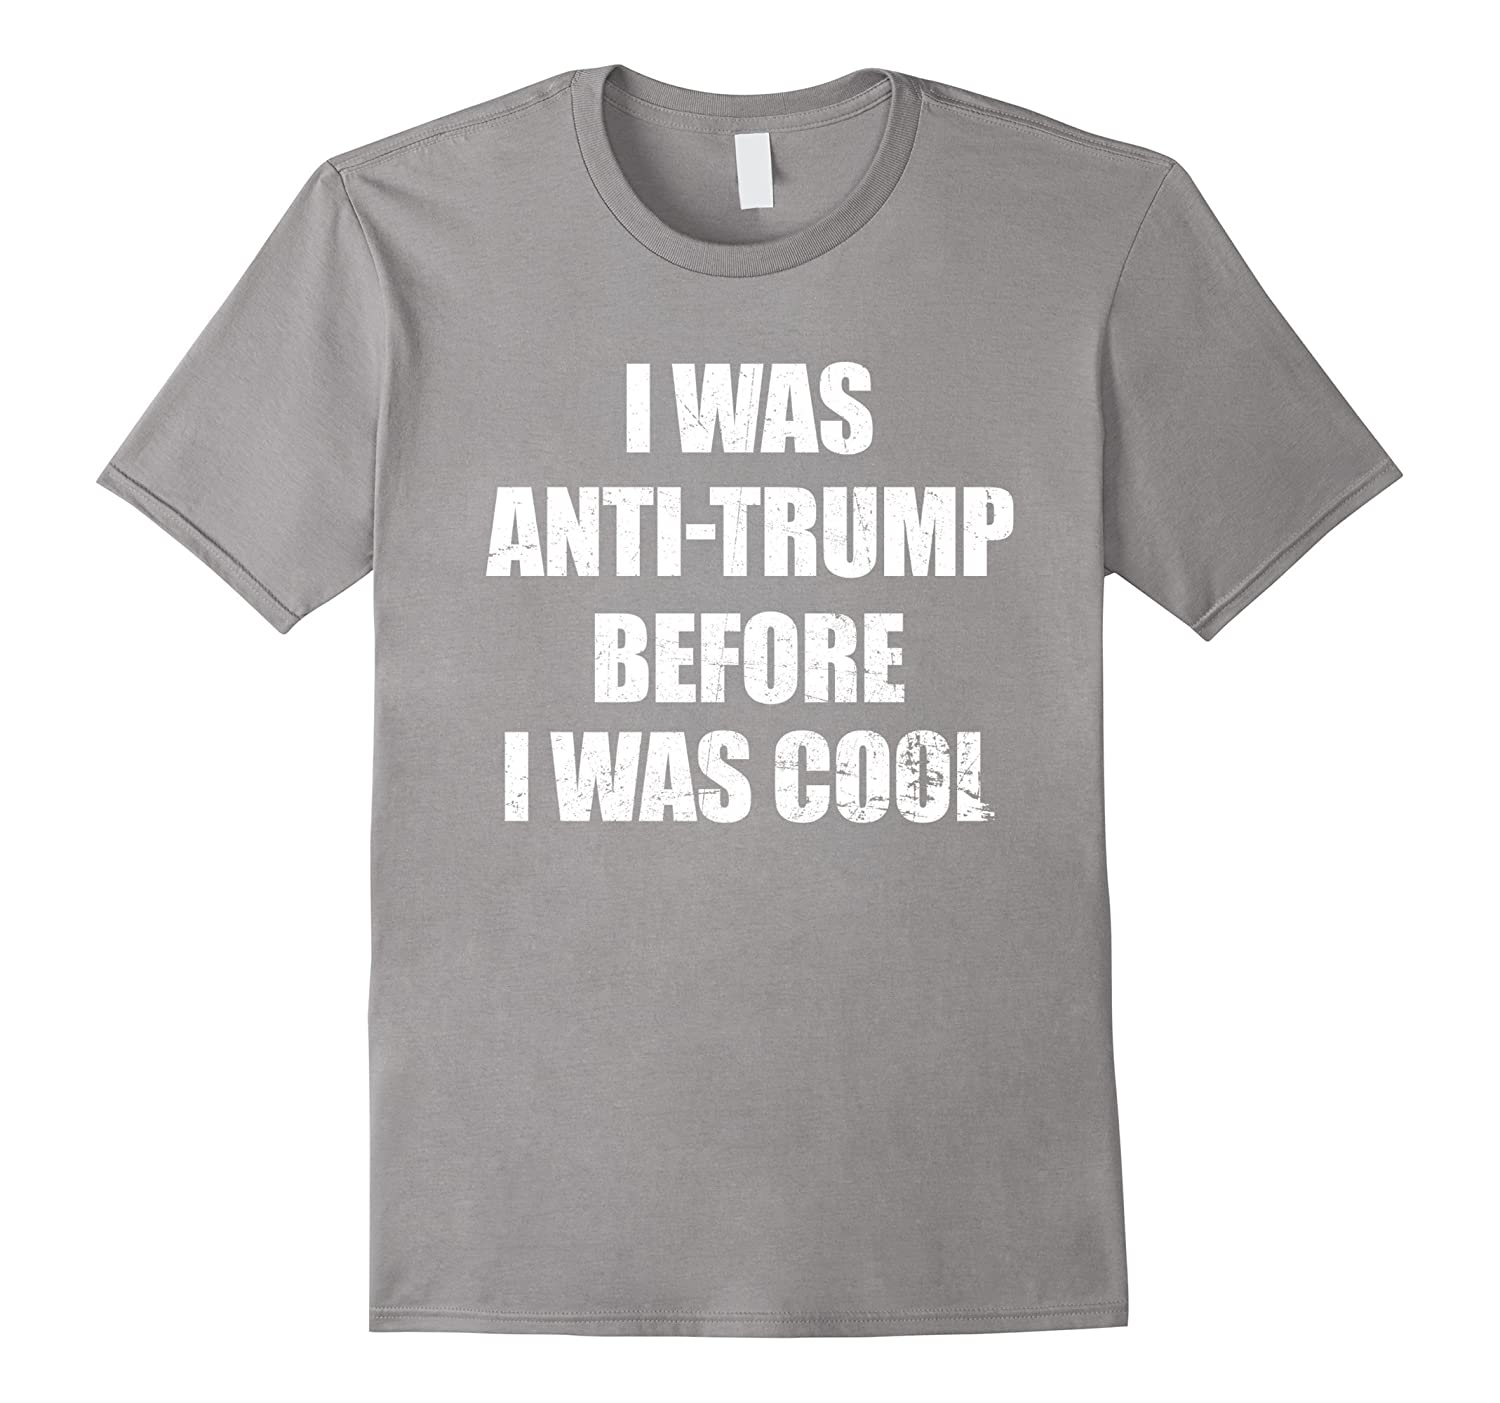 I WAS ANTI-TRUMP BEFORE IT WAS COOL Shirt